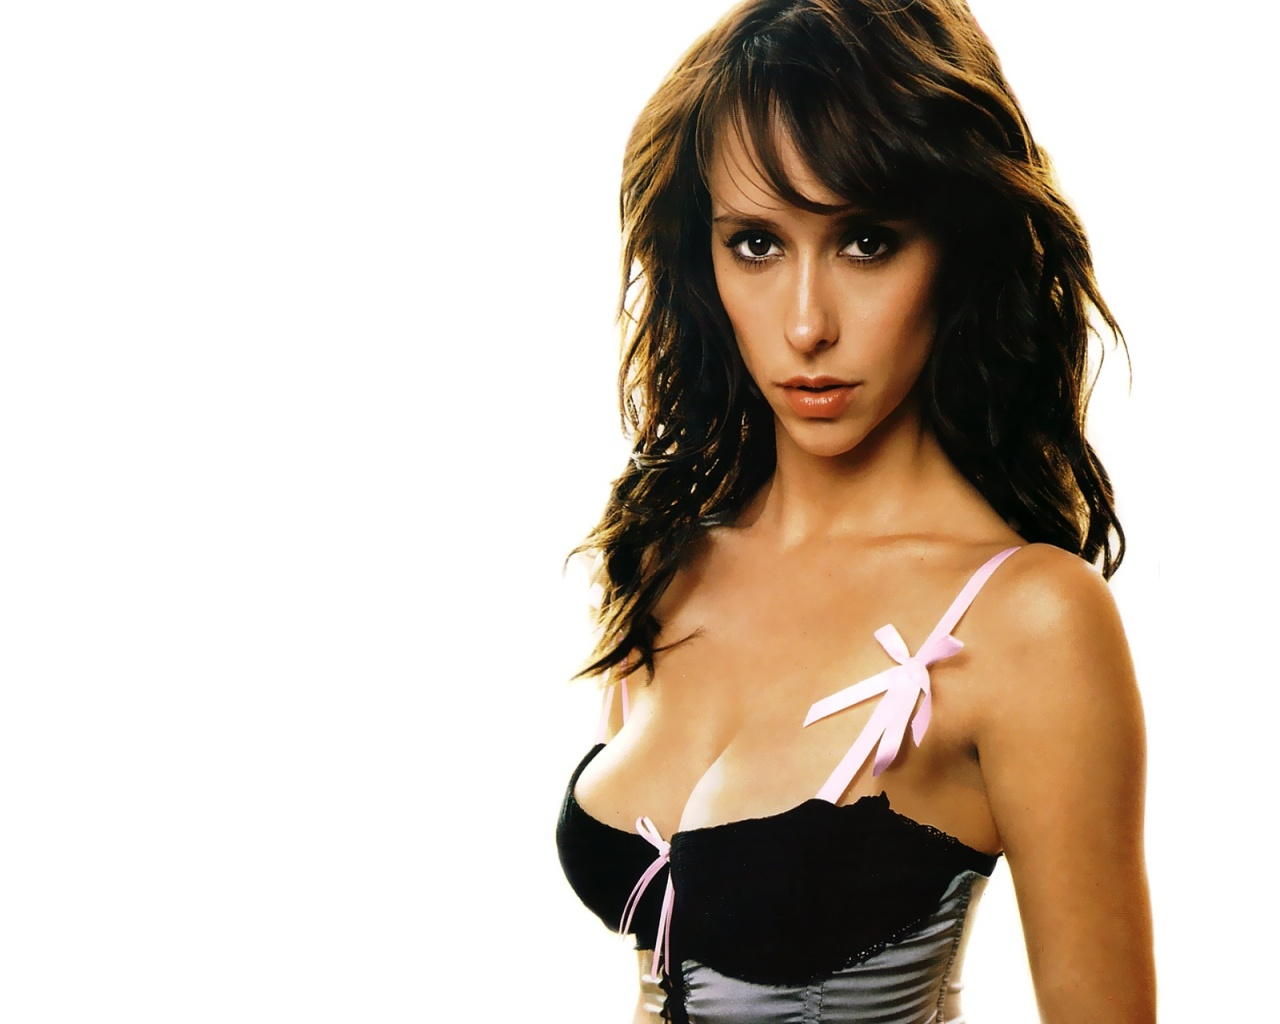 Sexy pics of jennifer love hewitt galleries 343